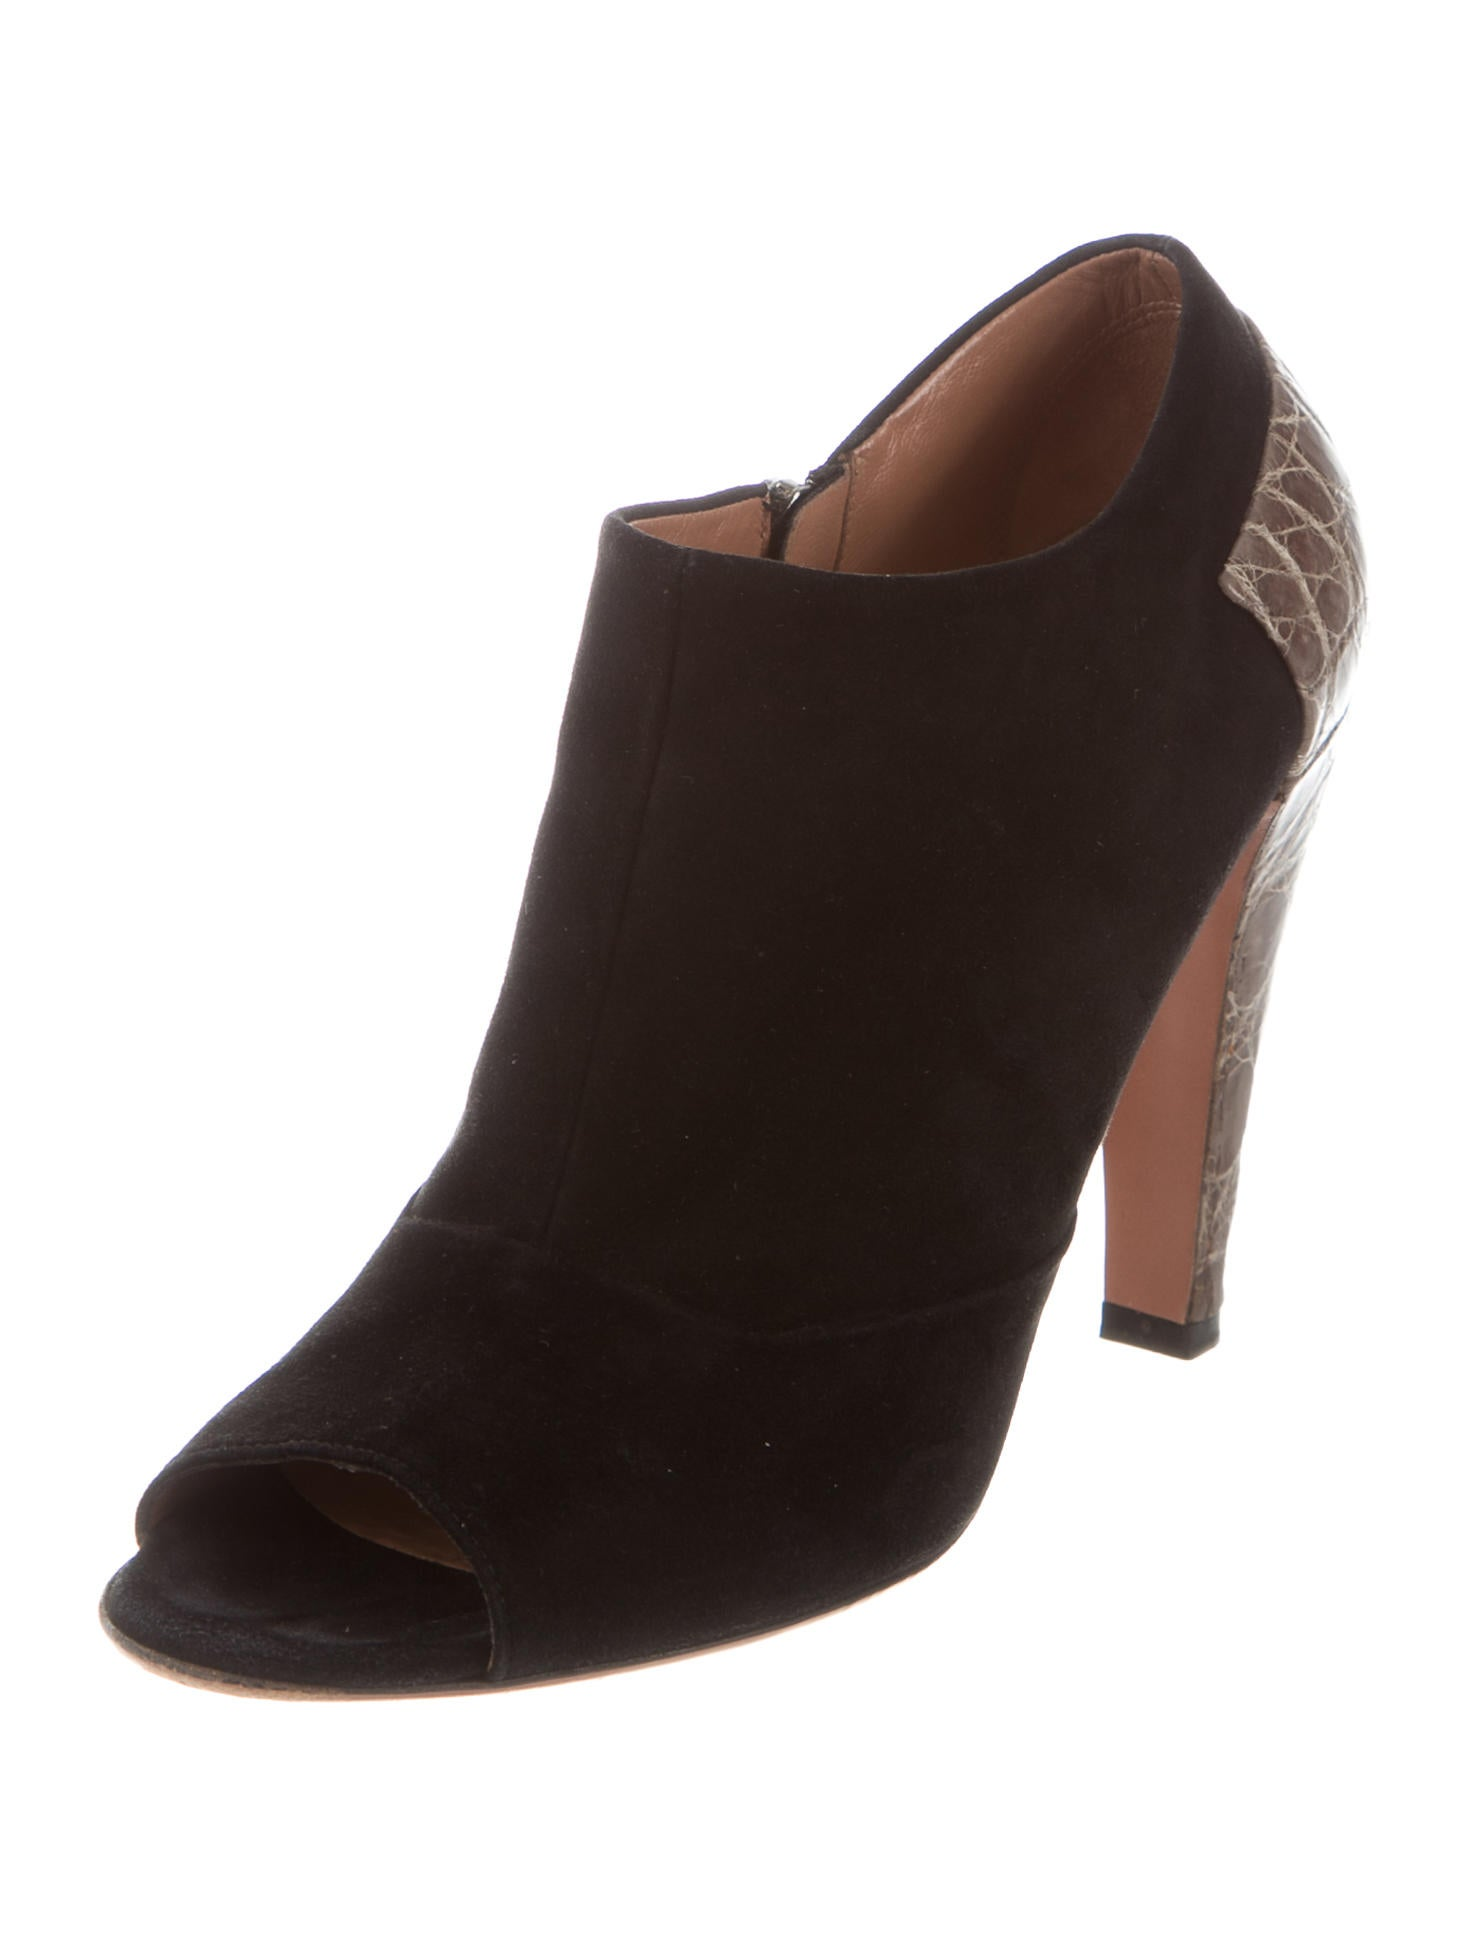 Alaïa Alligator-Accented Peep-Toe Booties free shipping Manchester discount sast cheap how much how much sale online with credit card for sale 9P2g5